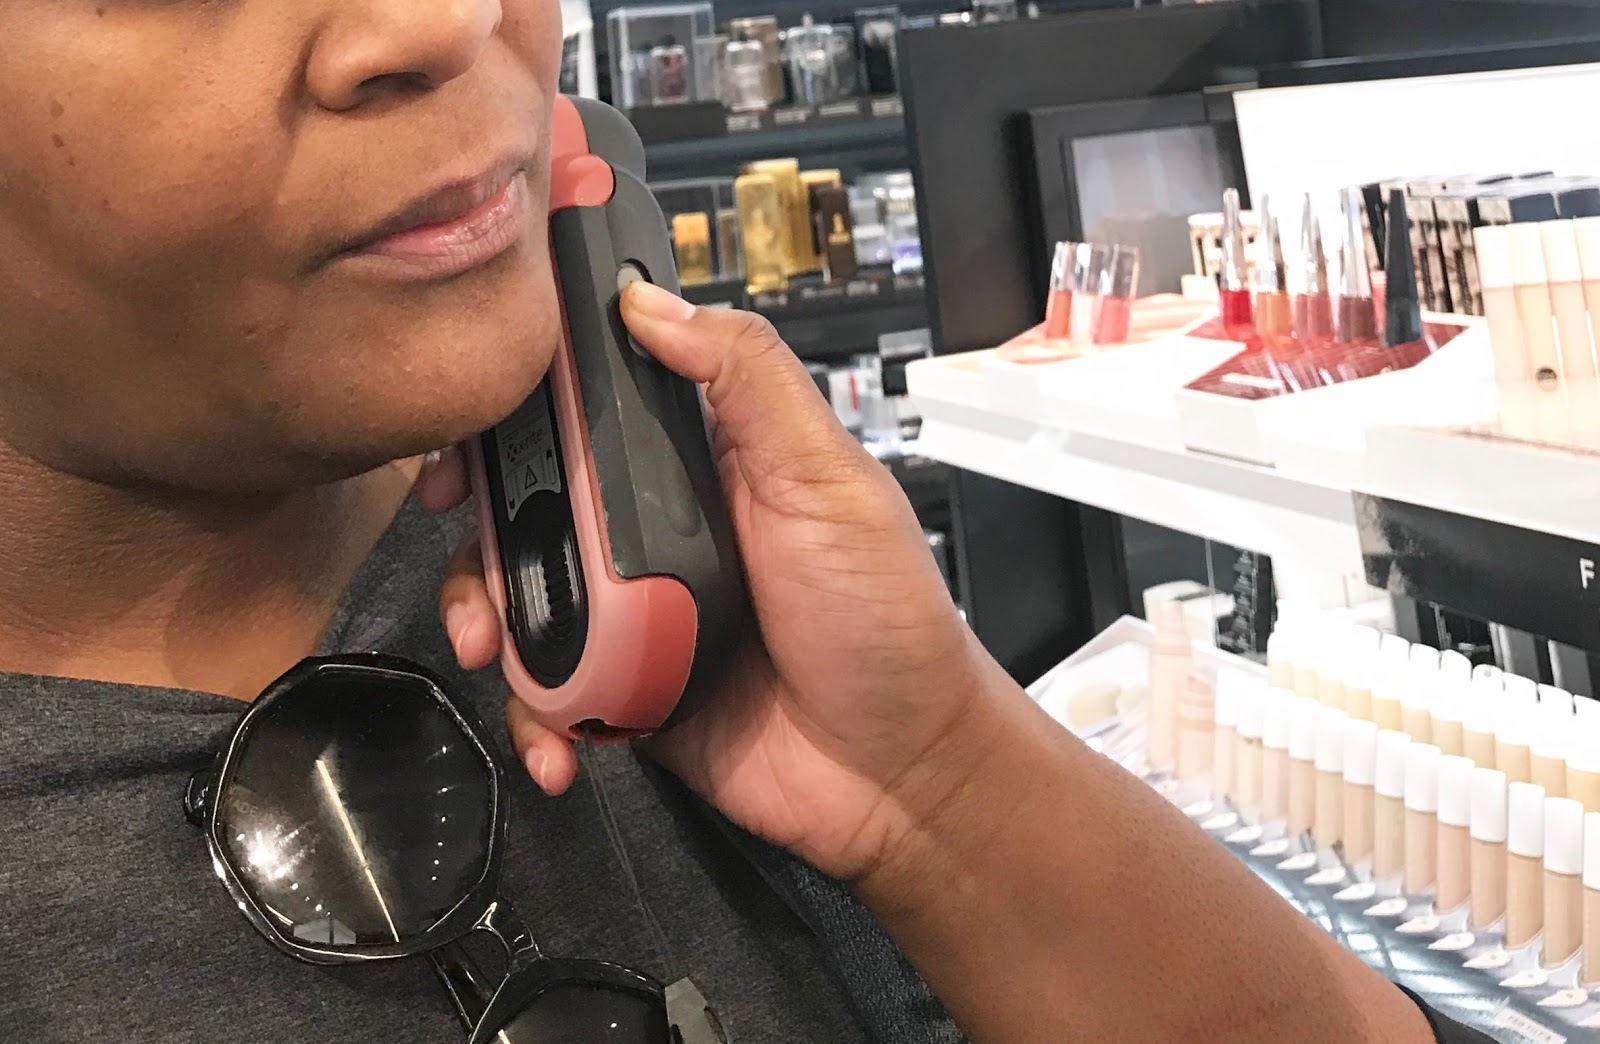 Image Fenty representative doing a skin test before suggesting makeup color